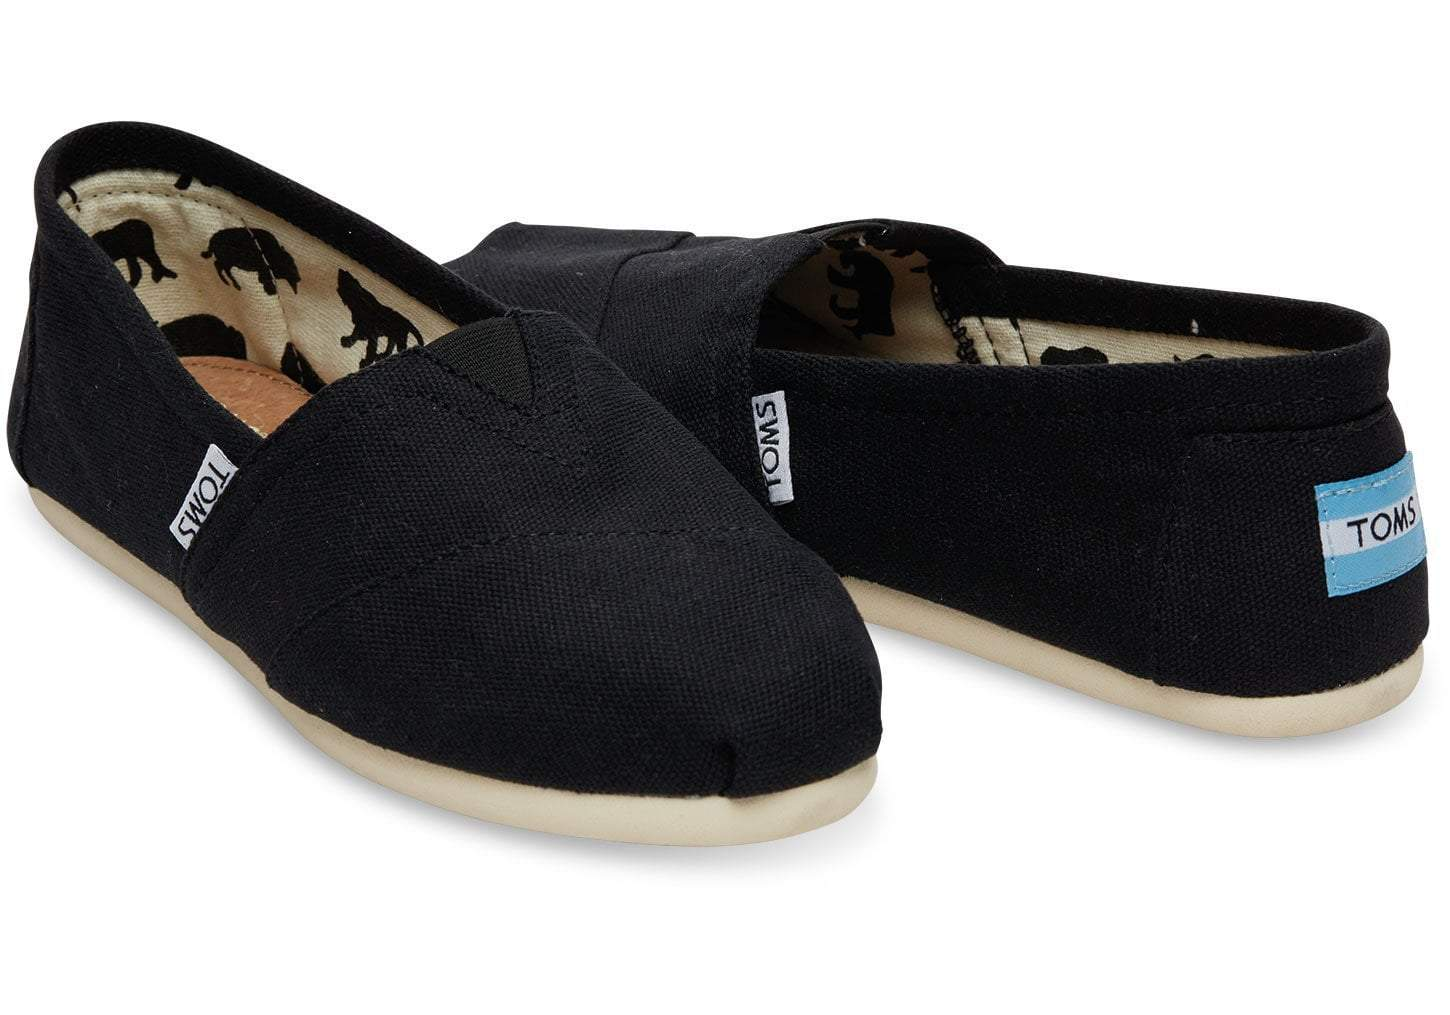 Toms Shoes Women's Shoes Toms Classic Women's Slip On - Black || David's Clothing, 1001b07- BLK